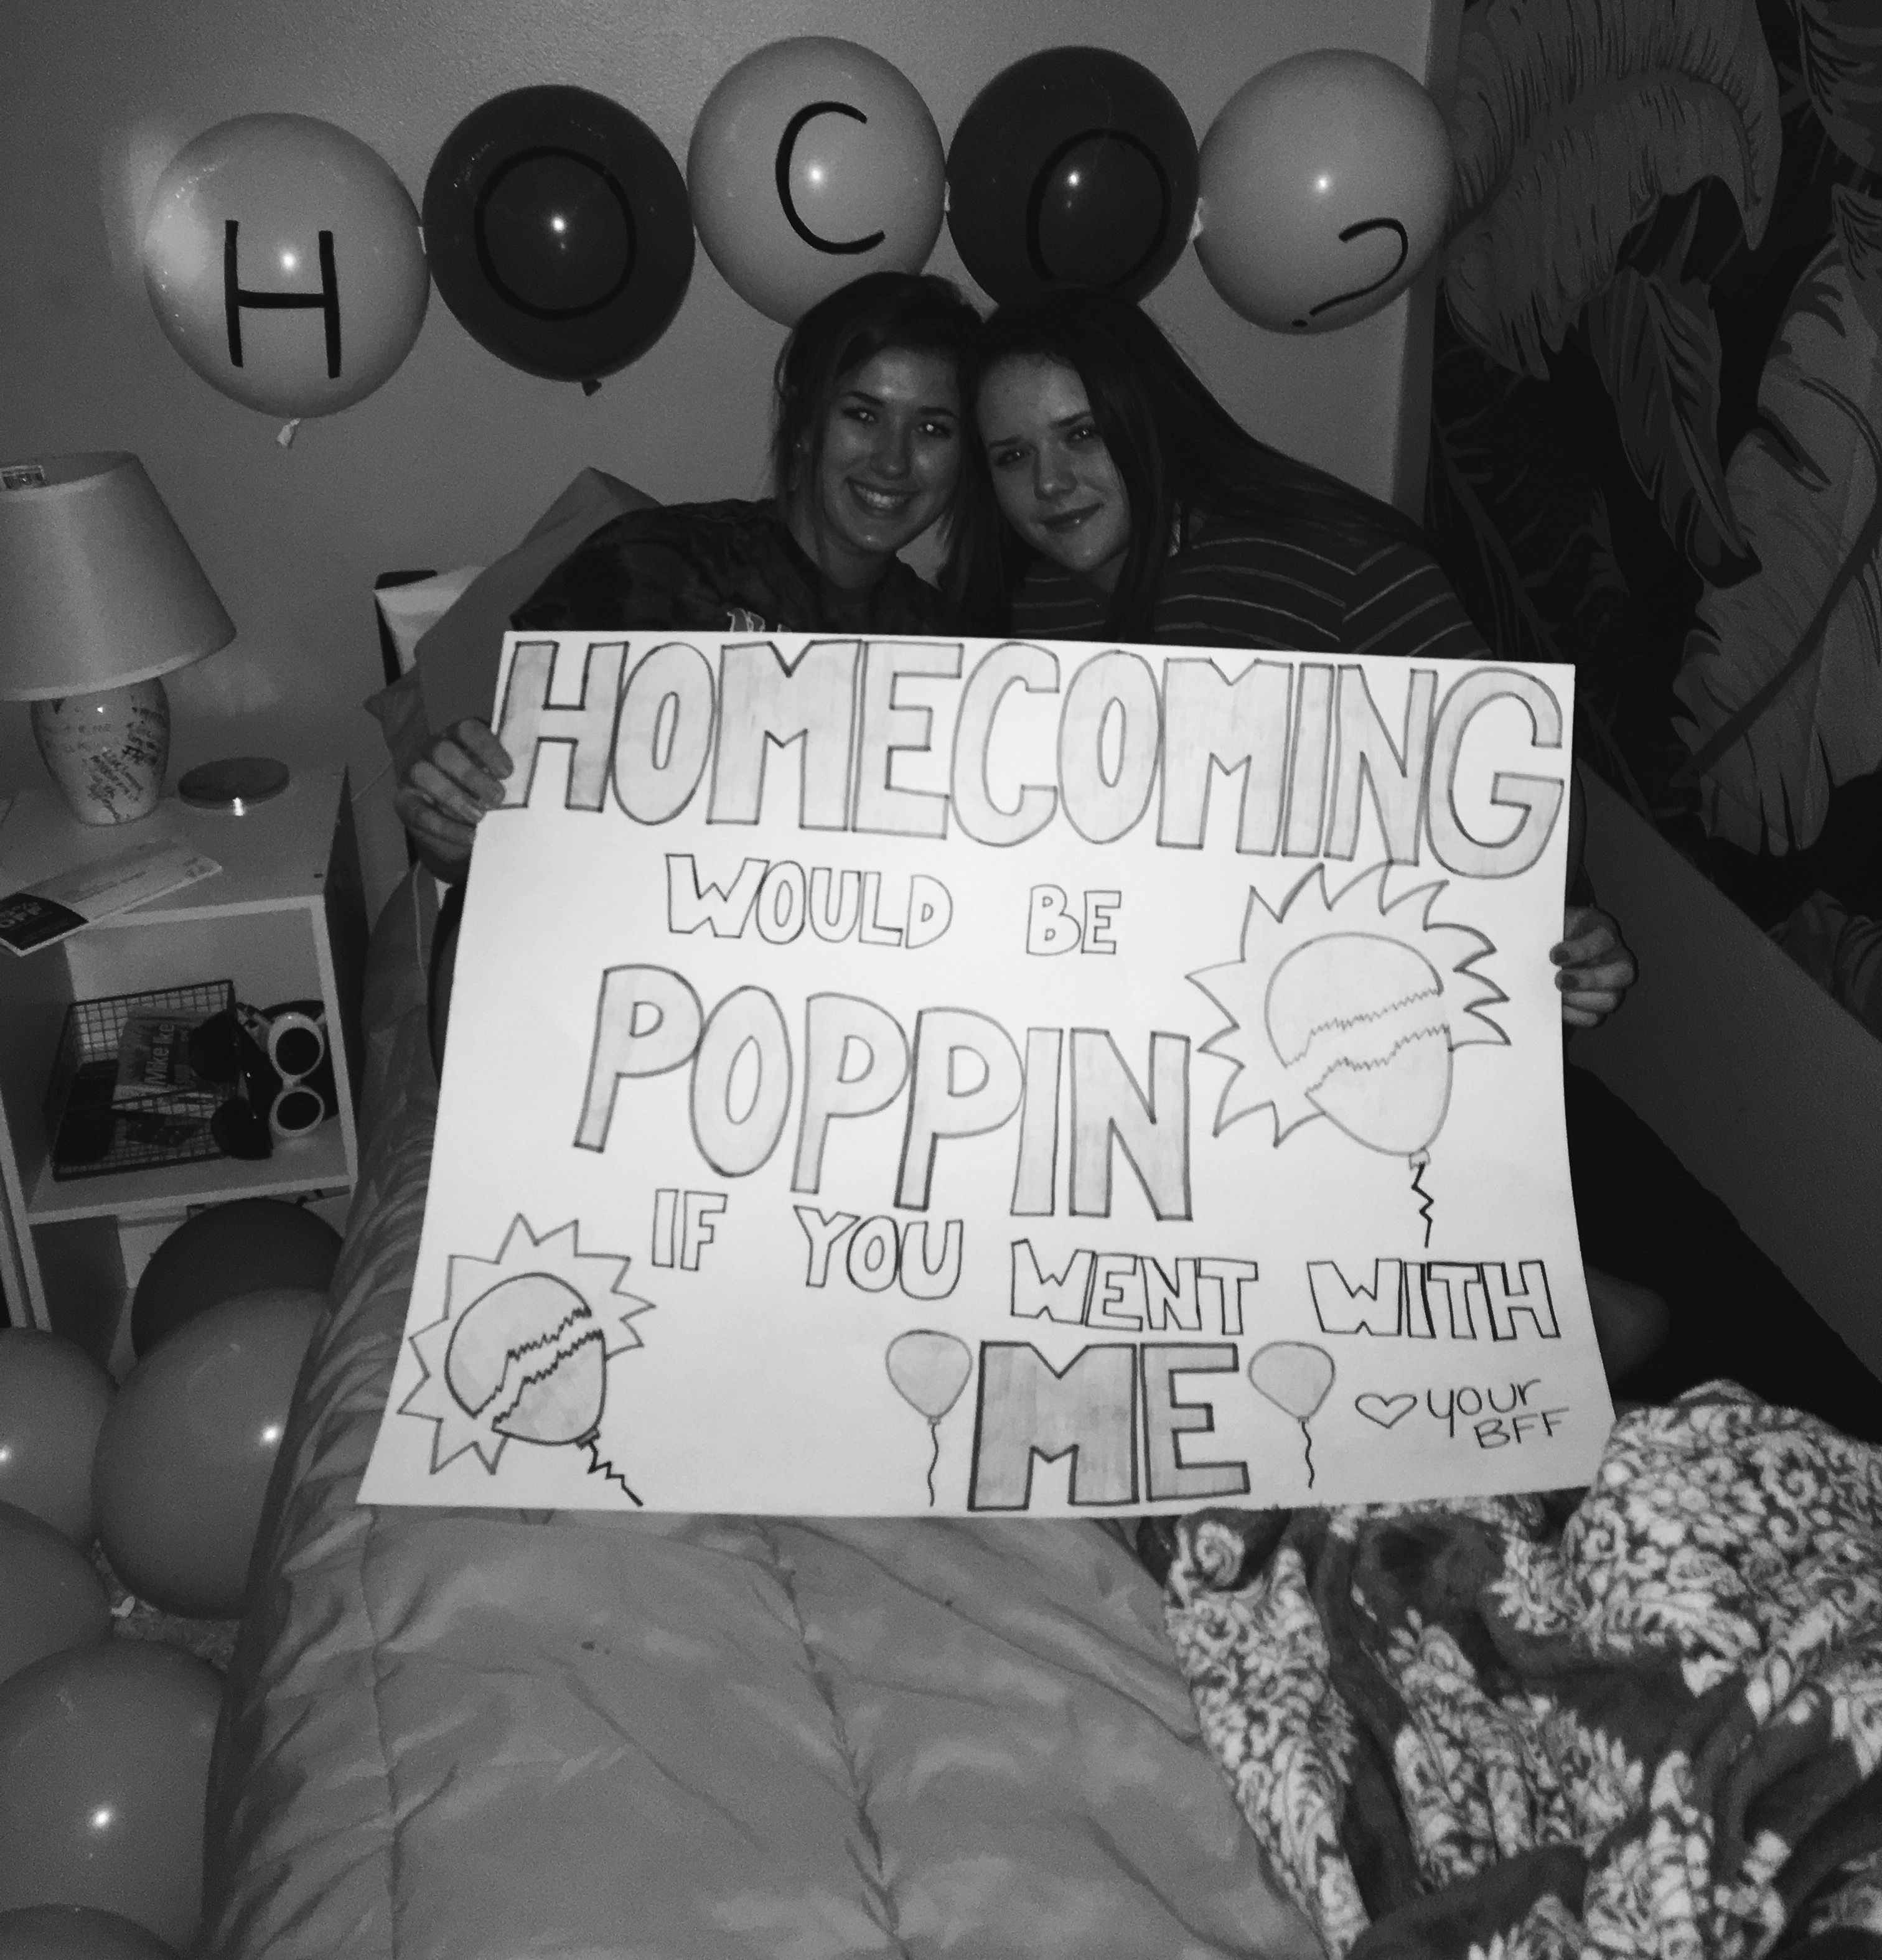 I N S T A G R A M : @V._.ee #hocoproposals